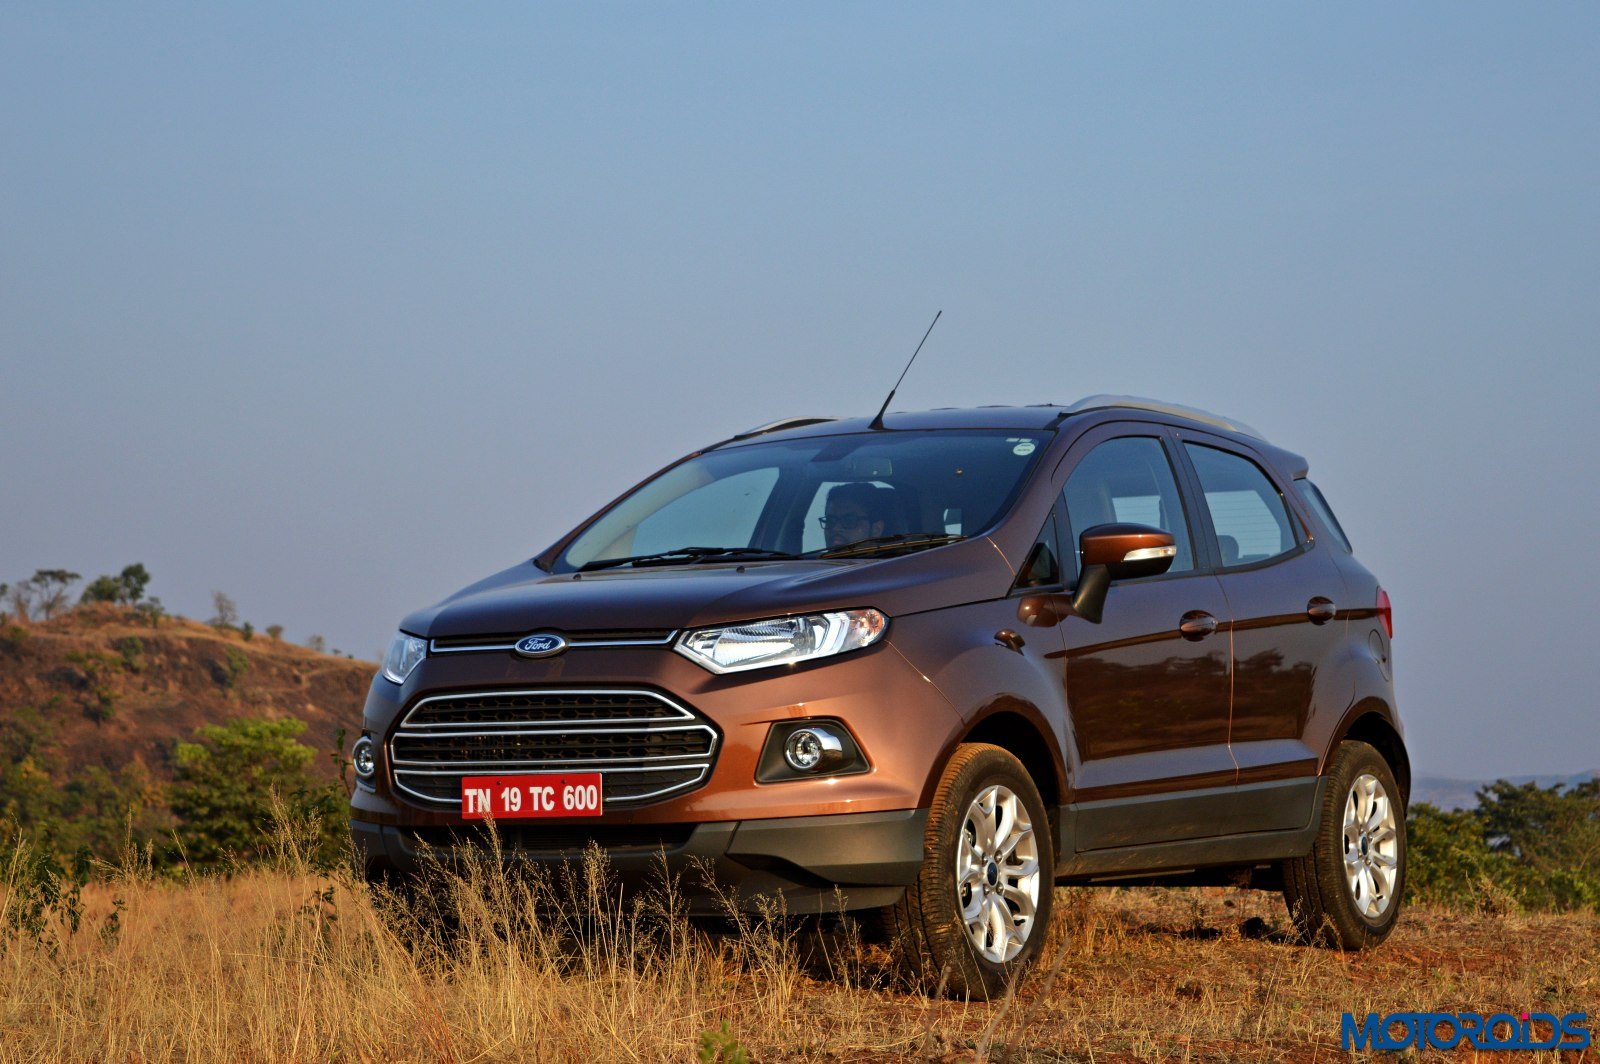 new 2016 ford ecosport 1 5 tdci diesel review rational refresh motoroids